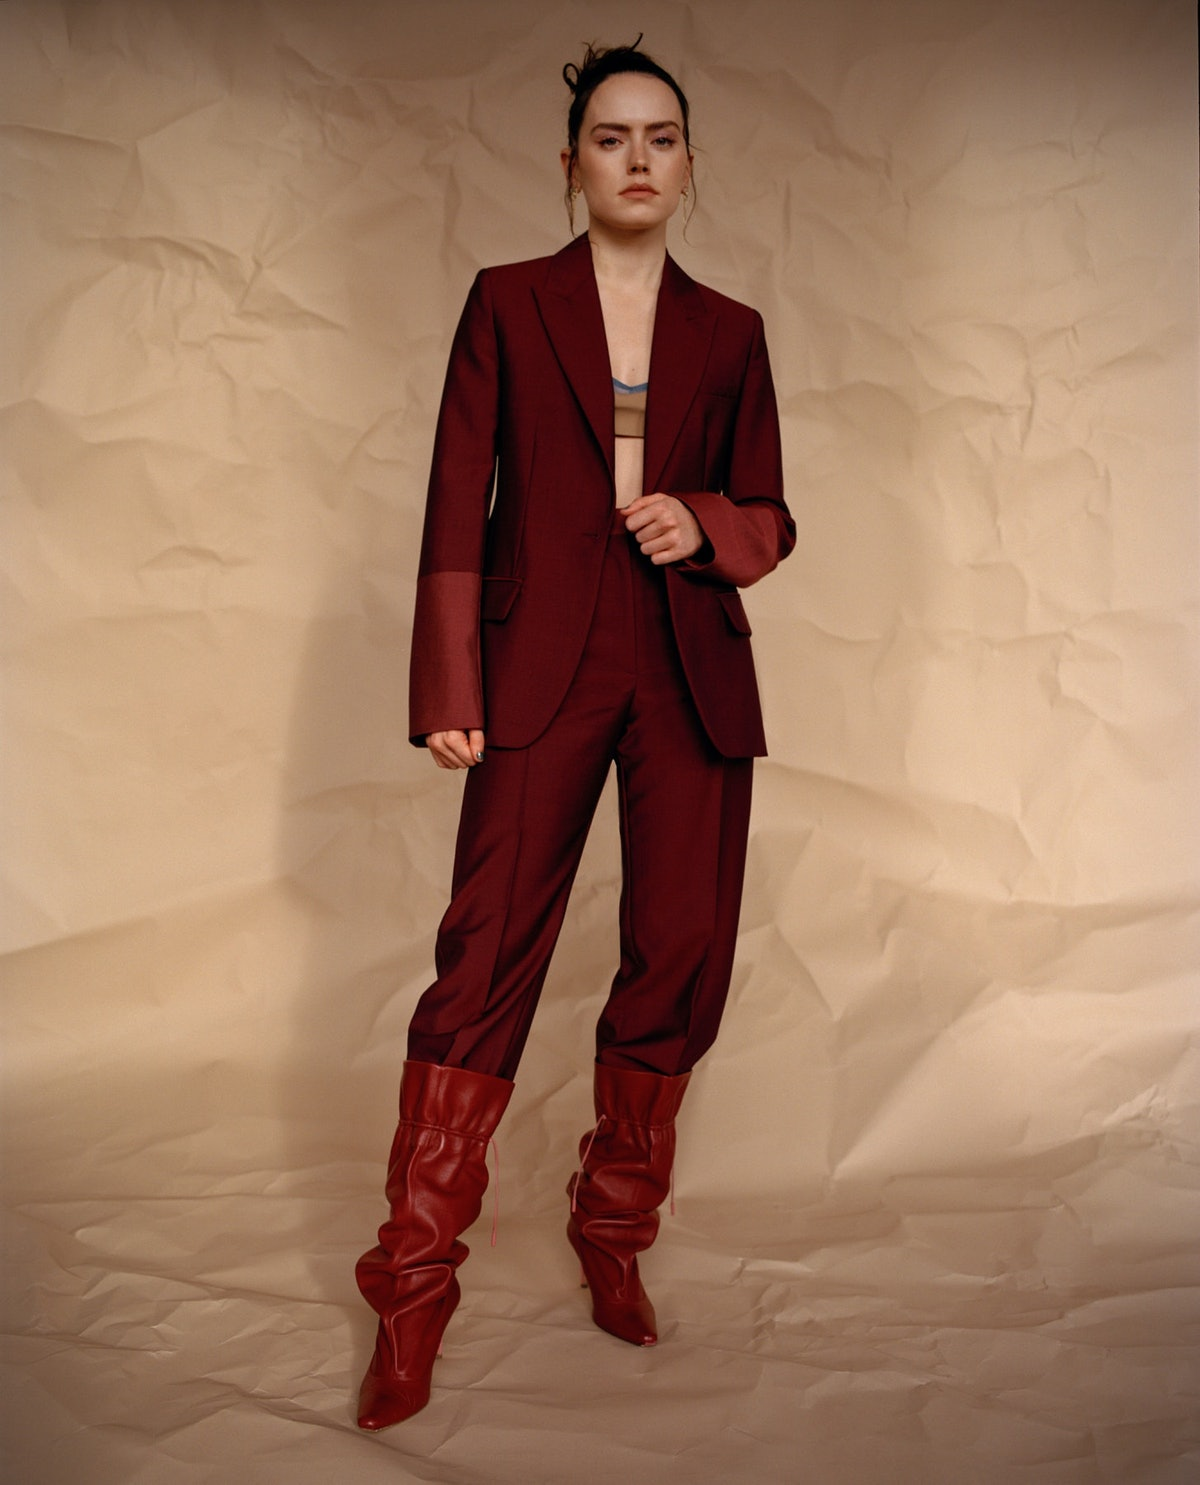 A full image of TZR's cover star Daisy Ridley wearing a red Roksanda jacket with an Emilia Wickstead...